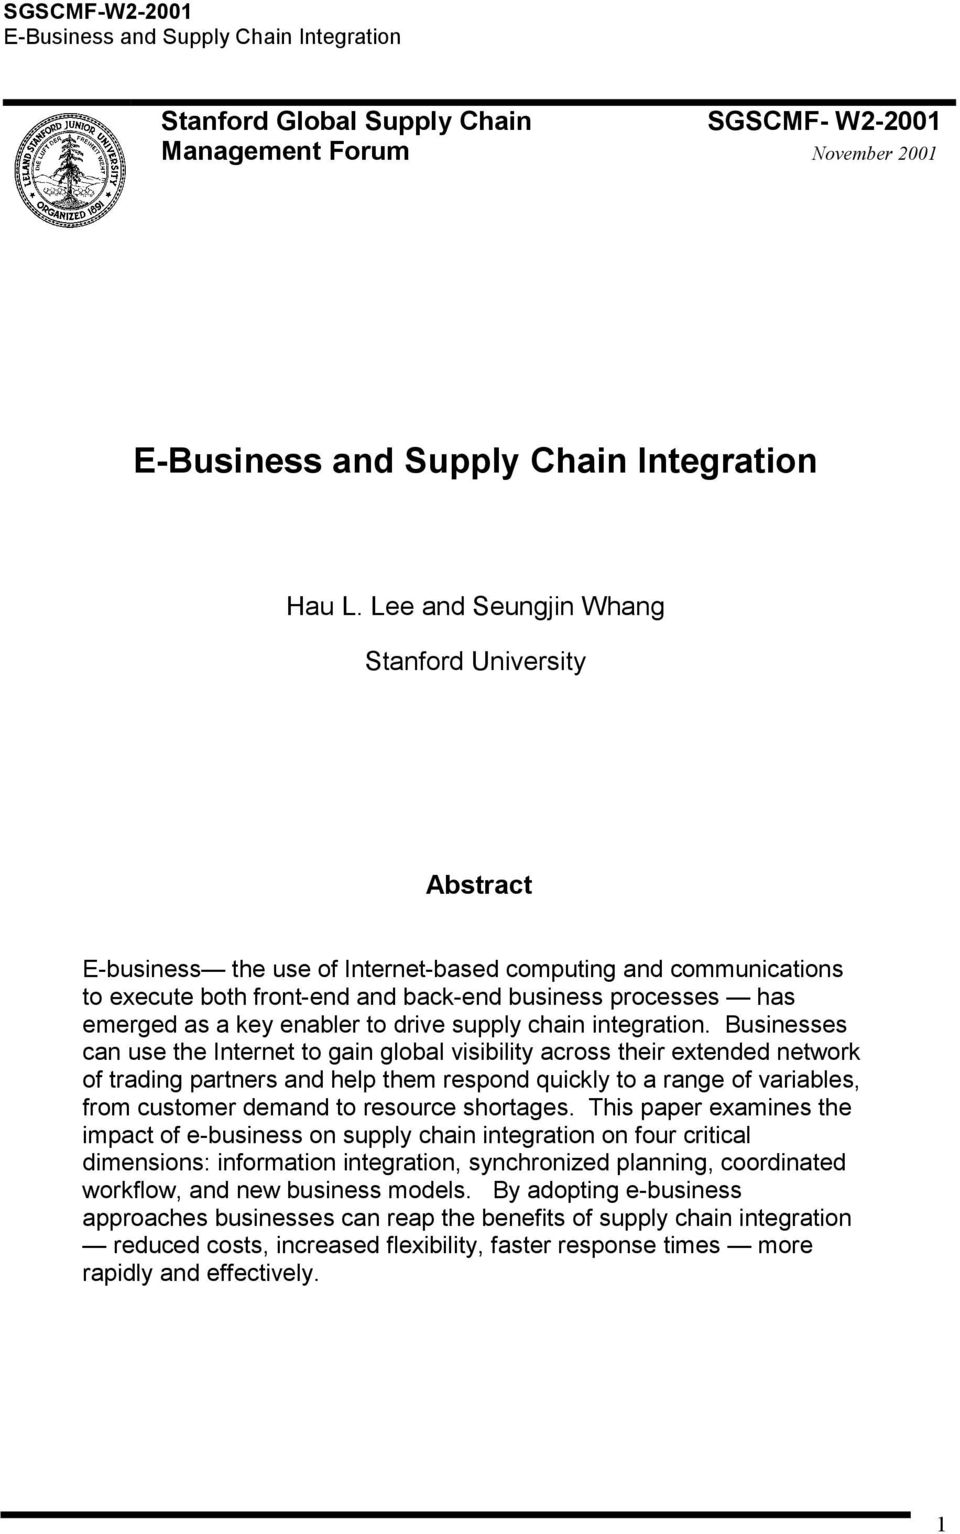 enabler to drive supply chain integration.